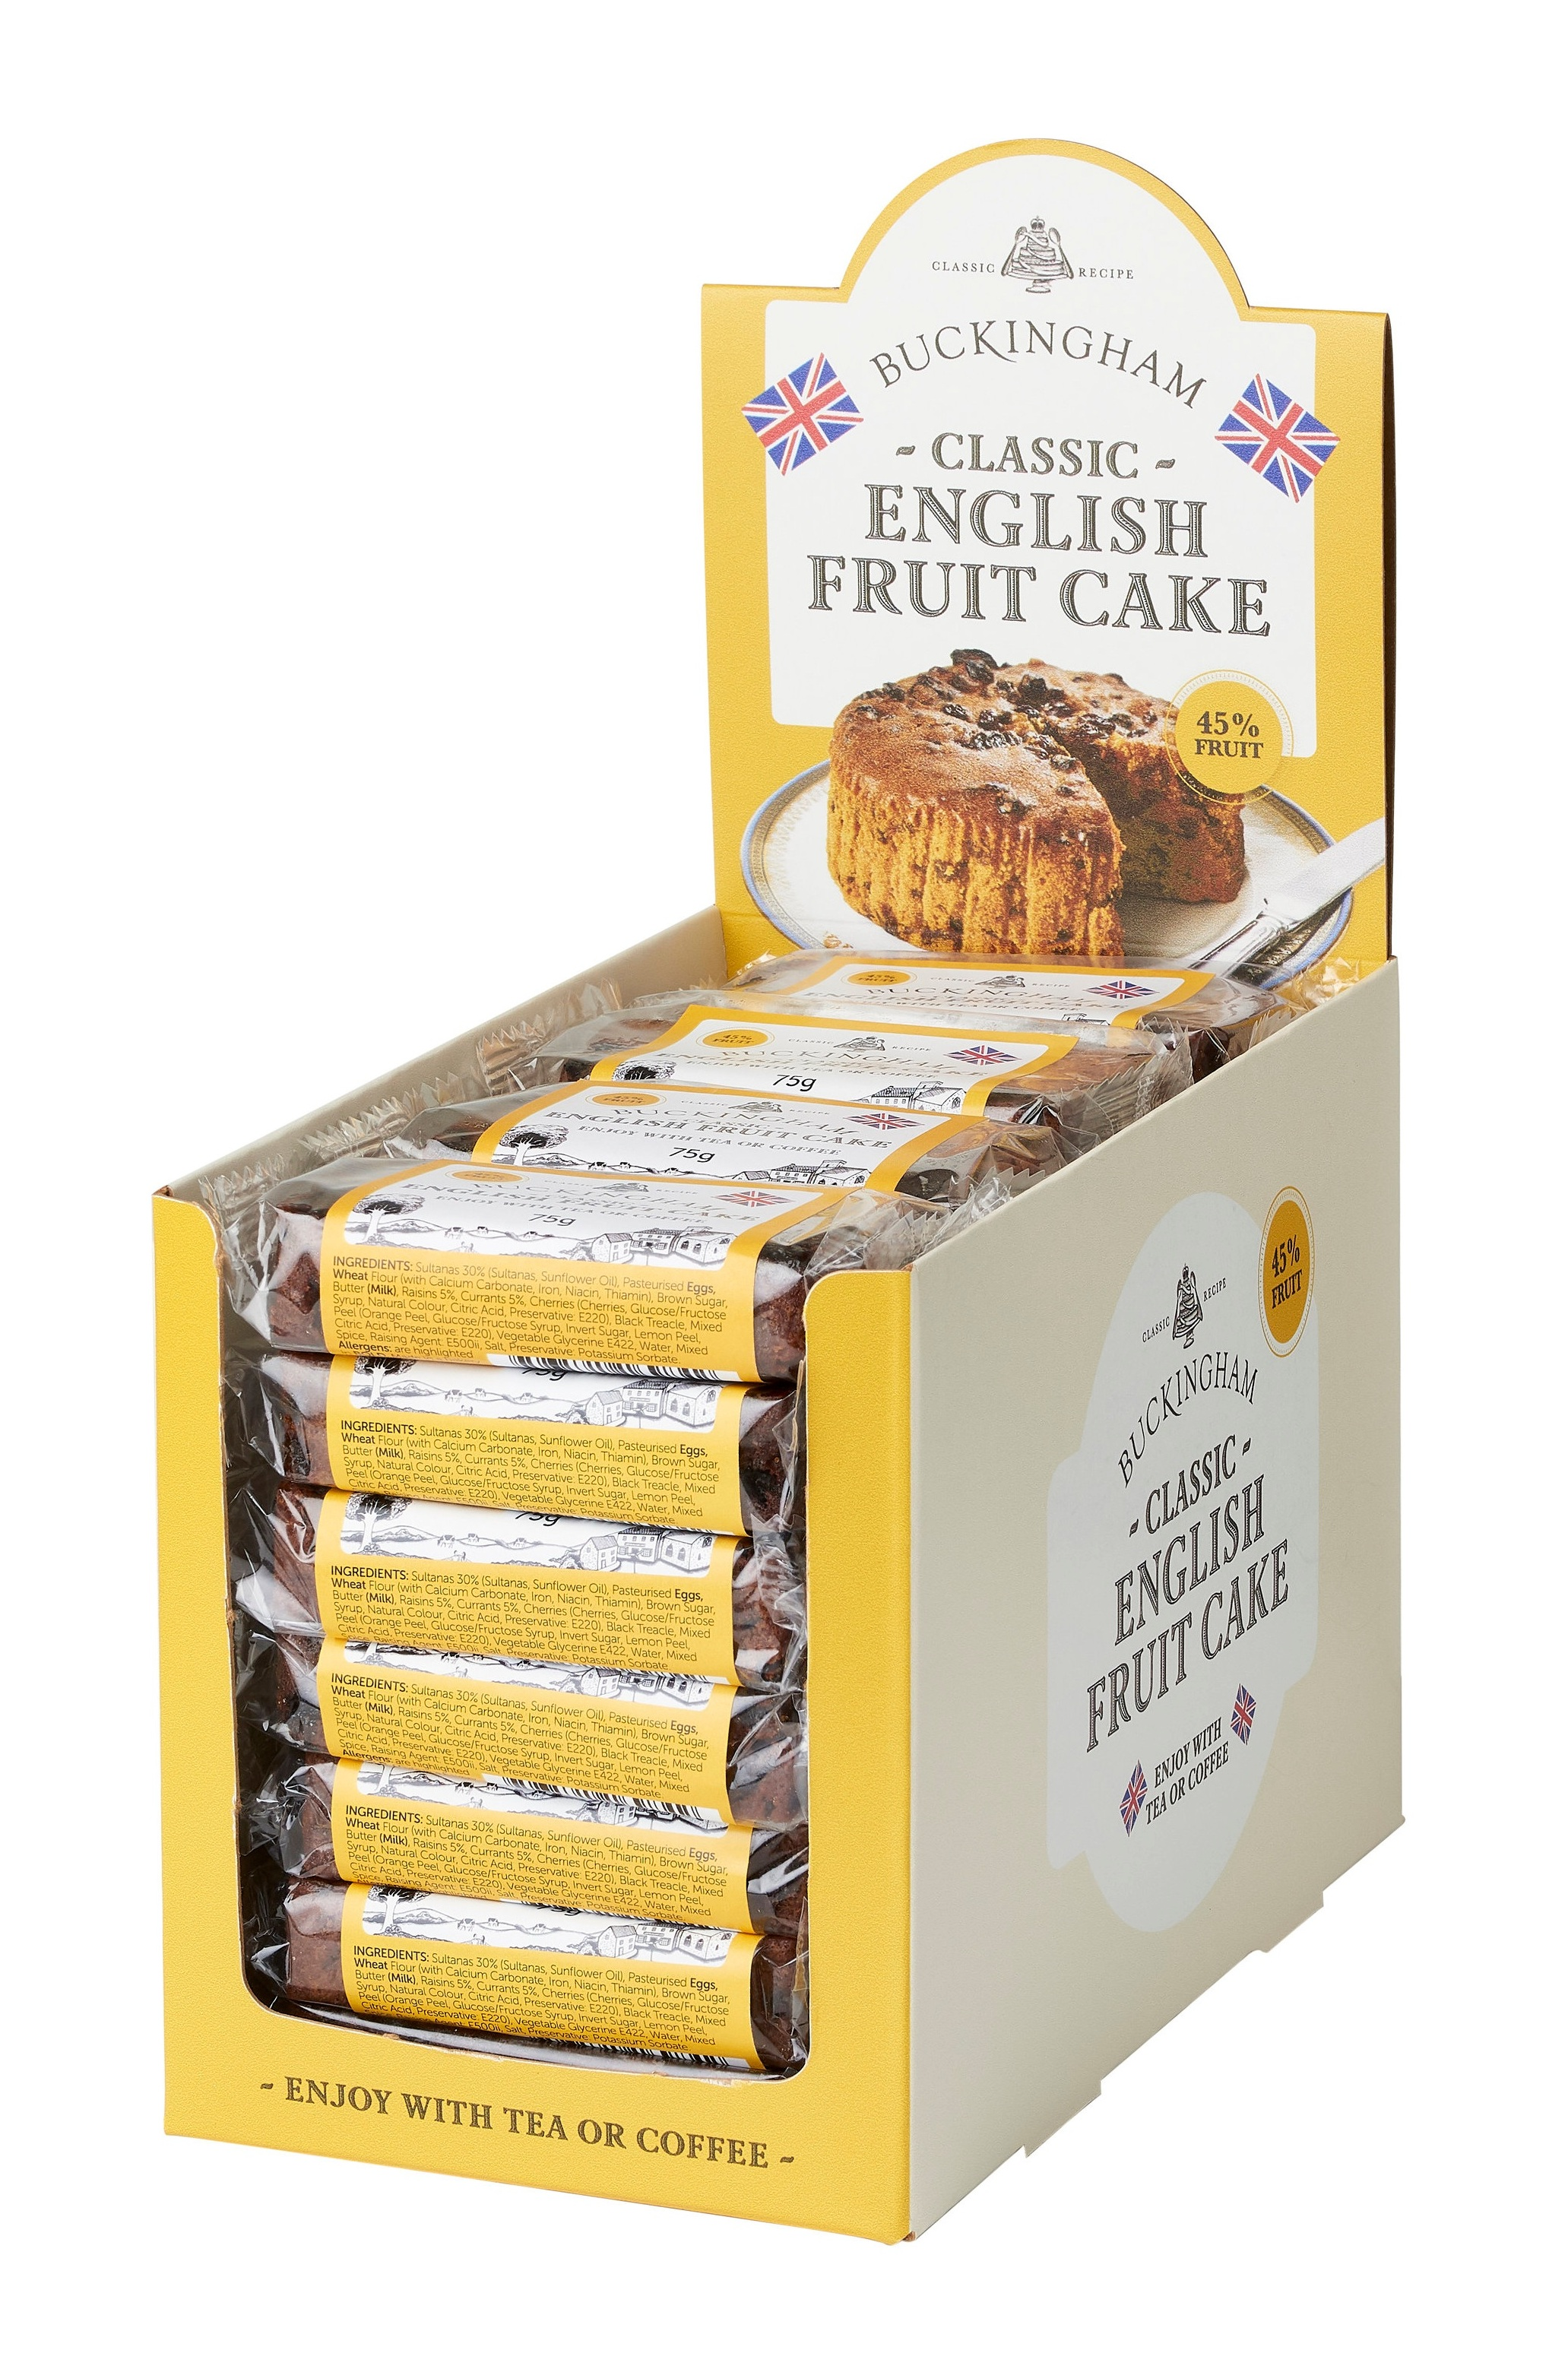 - Fruit Cake SlicesClassic Buckingham® recipePackaging: 75g slices. Cello-wrapped. Pack Size: 24 x 75g in display box (two display boxes per shipping carton). Storage: AmbientShelf-life: 12 monthsRecipe: Pure butter. Over 45% fruit.No artificial colours or flavours.